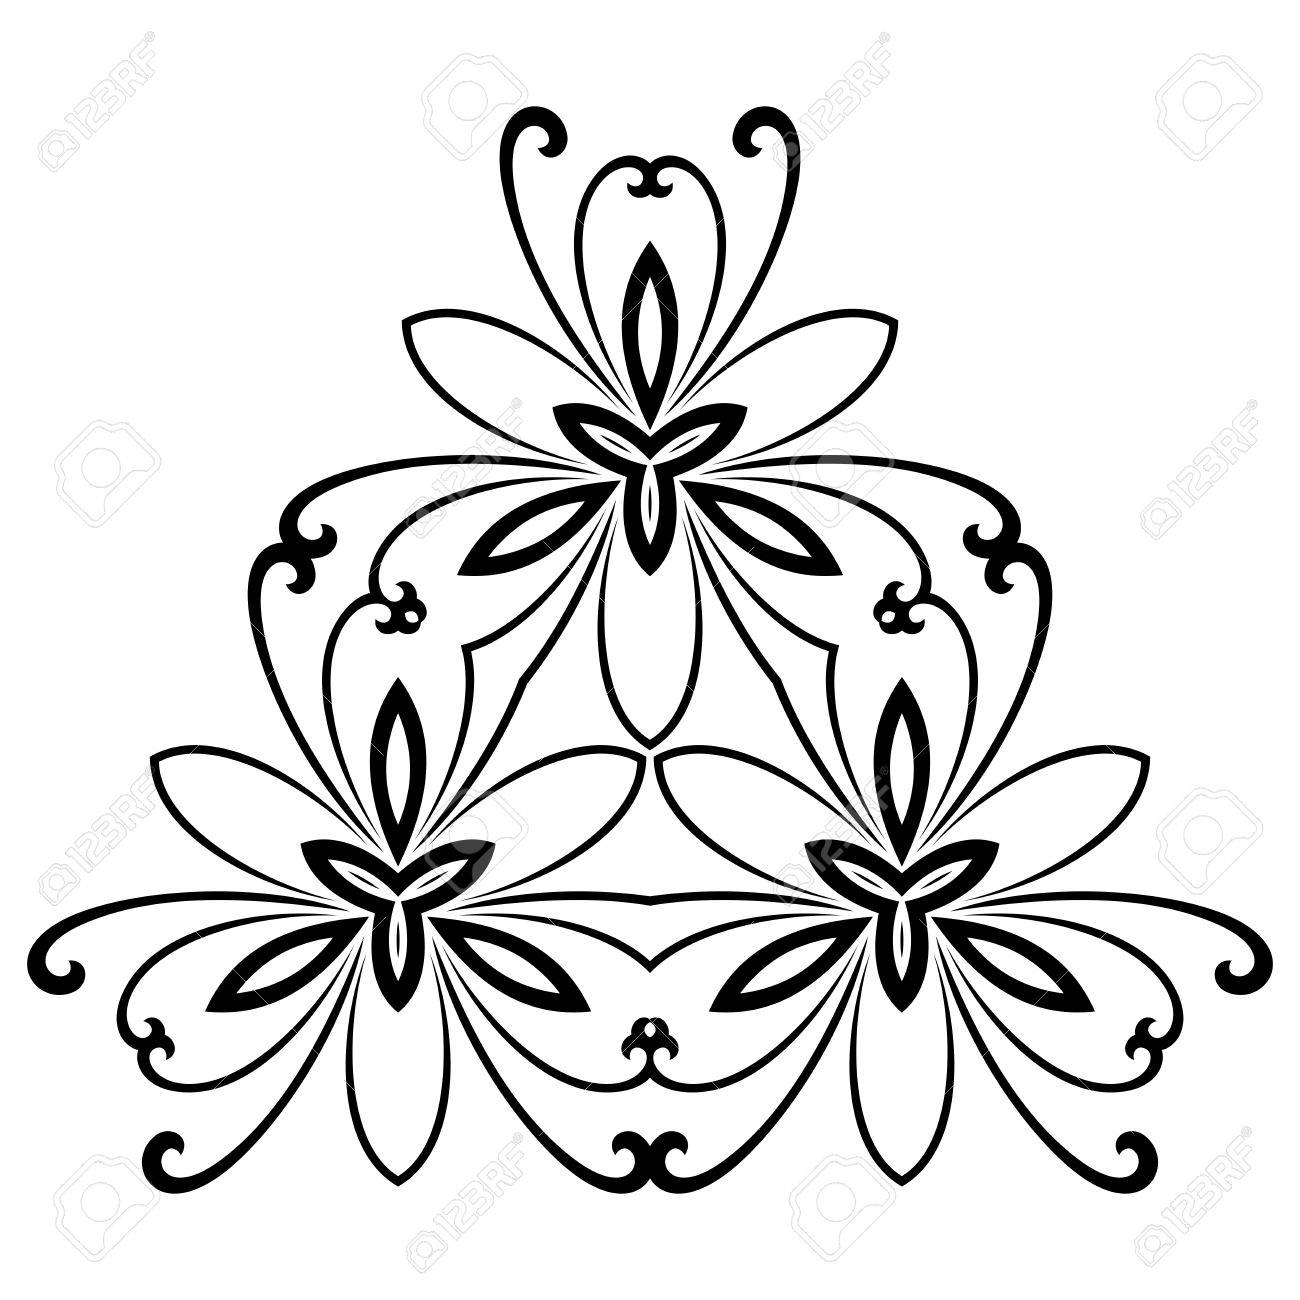 damask vector floral pattern with arabesque and oriental elements rh 123rf com vector floral pattern background vector floral pattern stencil